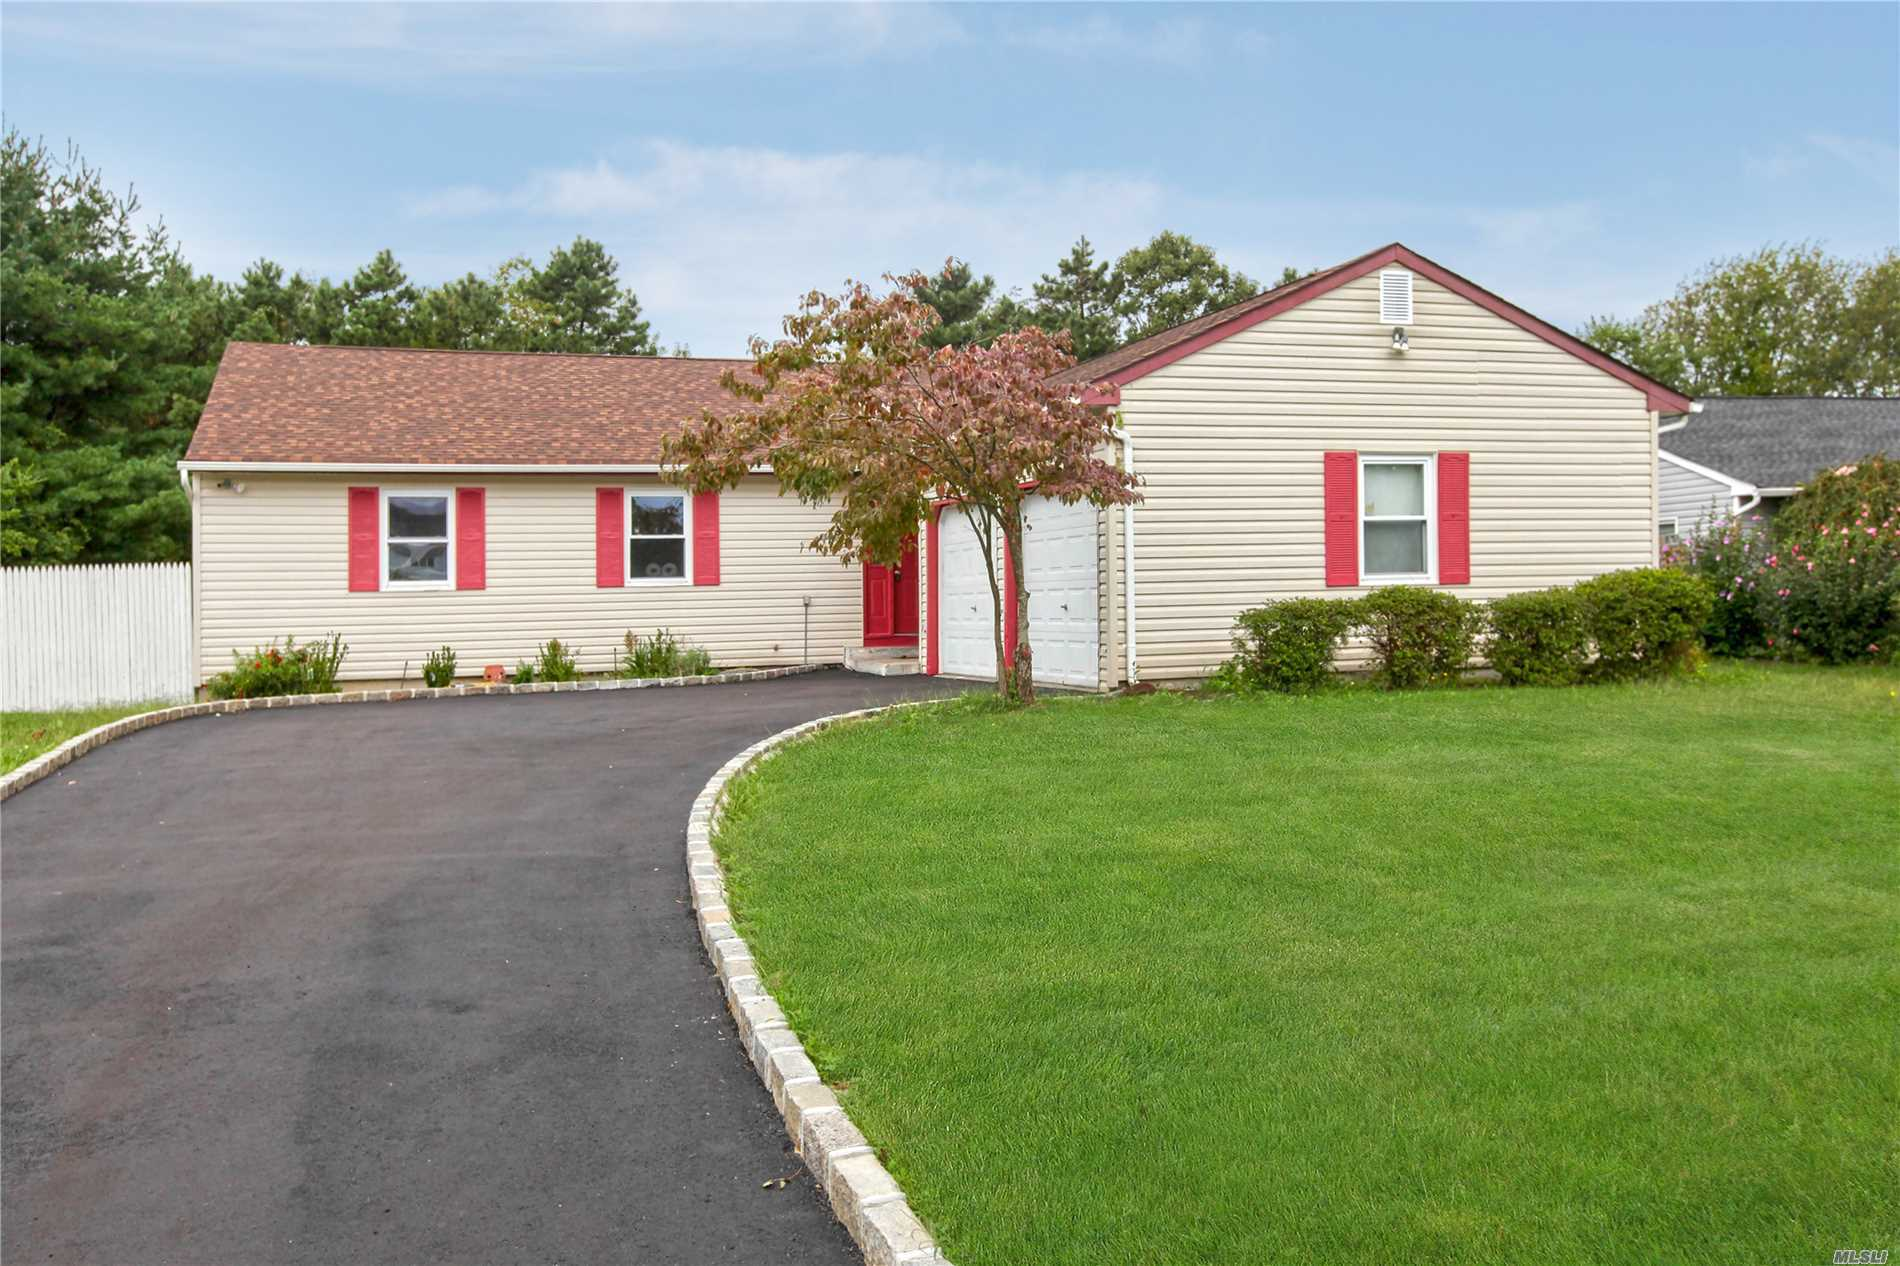 26 Blueberry Ln - E. Patchogue, New York